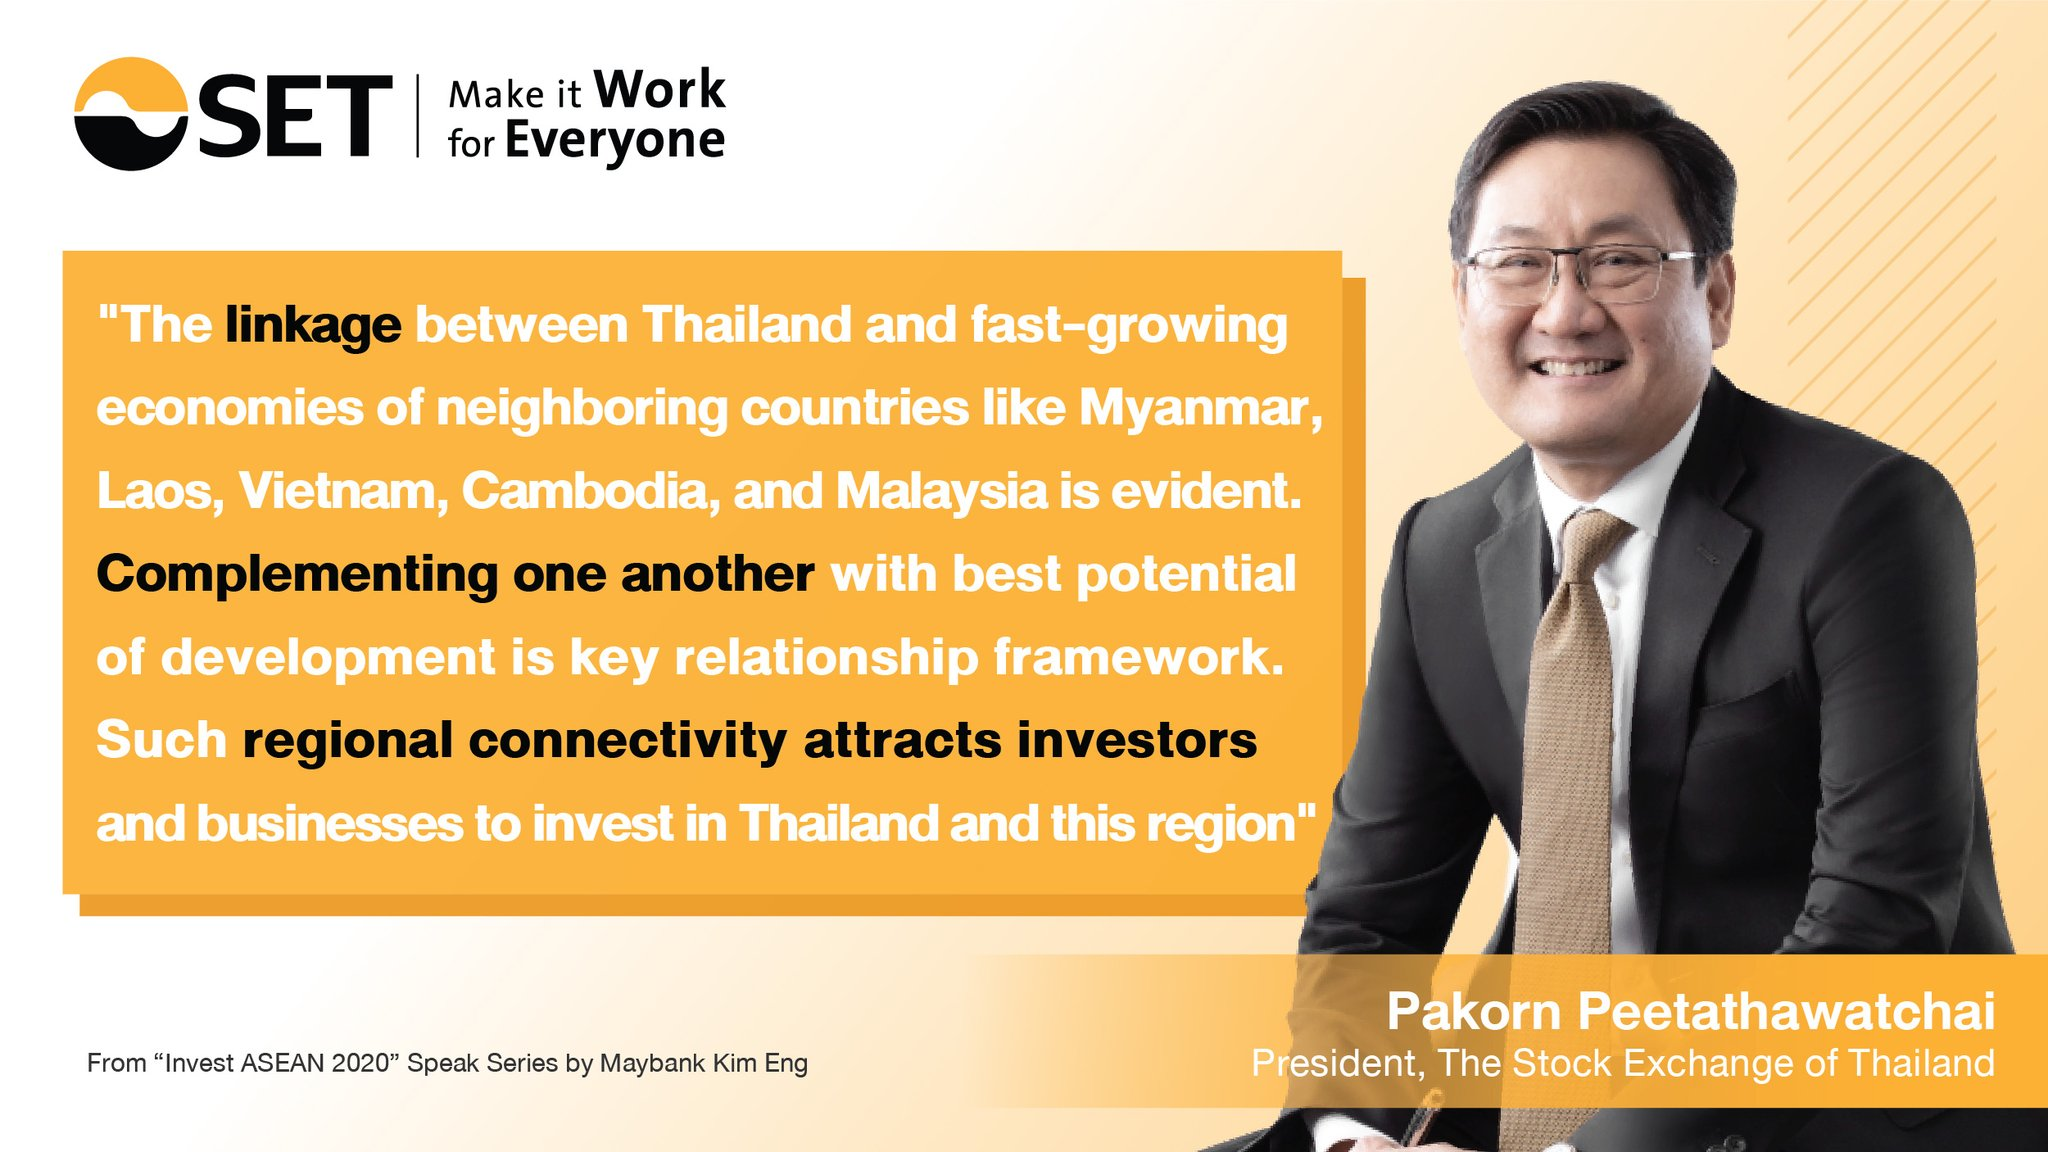 Set Thailand En On Twitter Set President S Speech At Invest Asean 2020 Recently Held By Maybank Kim Eng Giving His Views On Clmv Linkage To Attract Investment Into This Region Maybank Ke Th Mymaybank Https T Co Zt6ofo2vmu